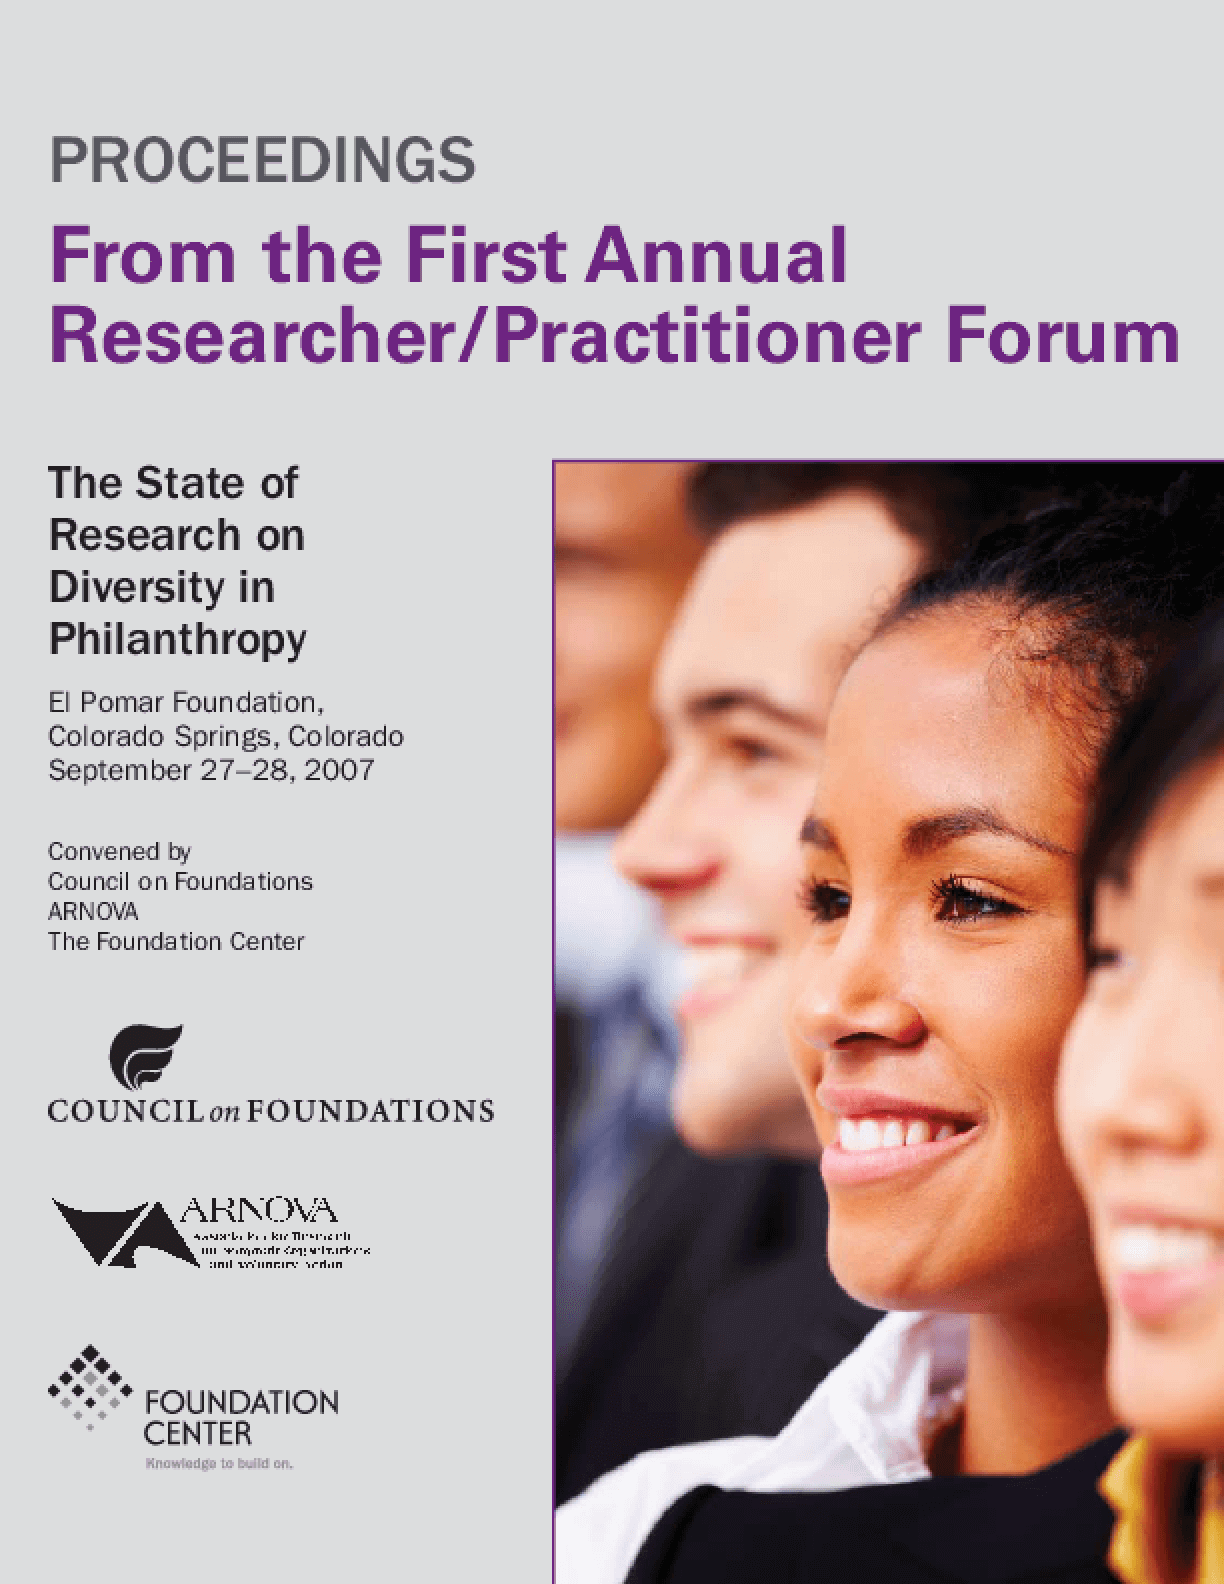 Proceedings From the First Annual Researcher/Practitioner Forum: The State of Research on Diversity in Philanthropy